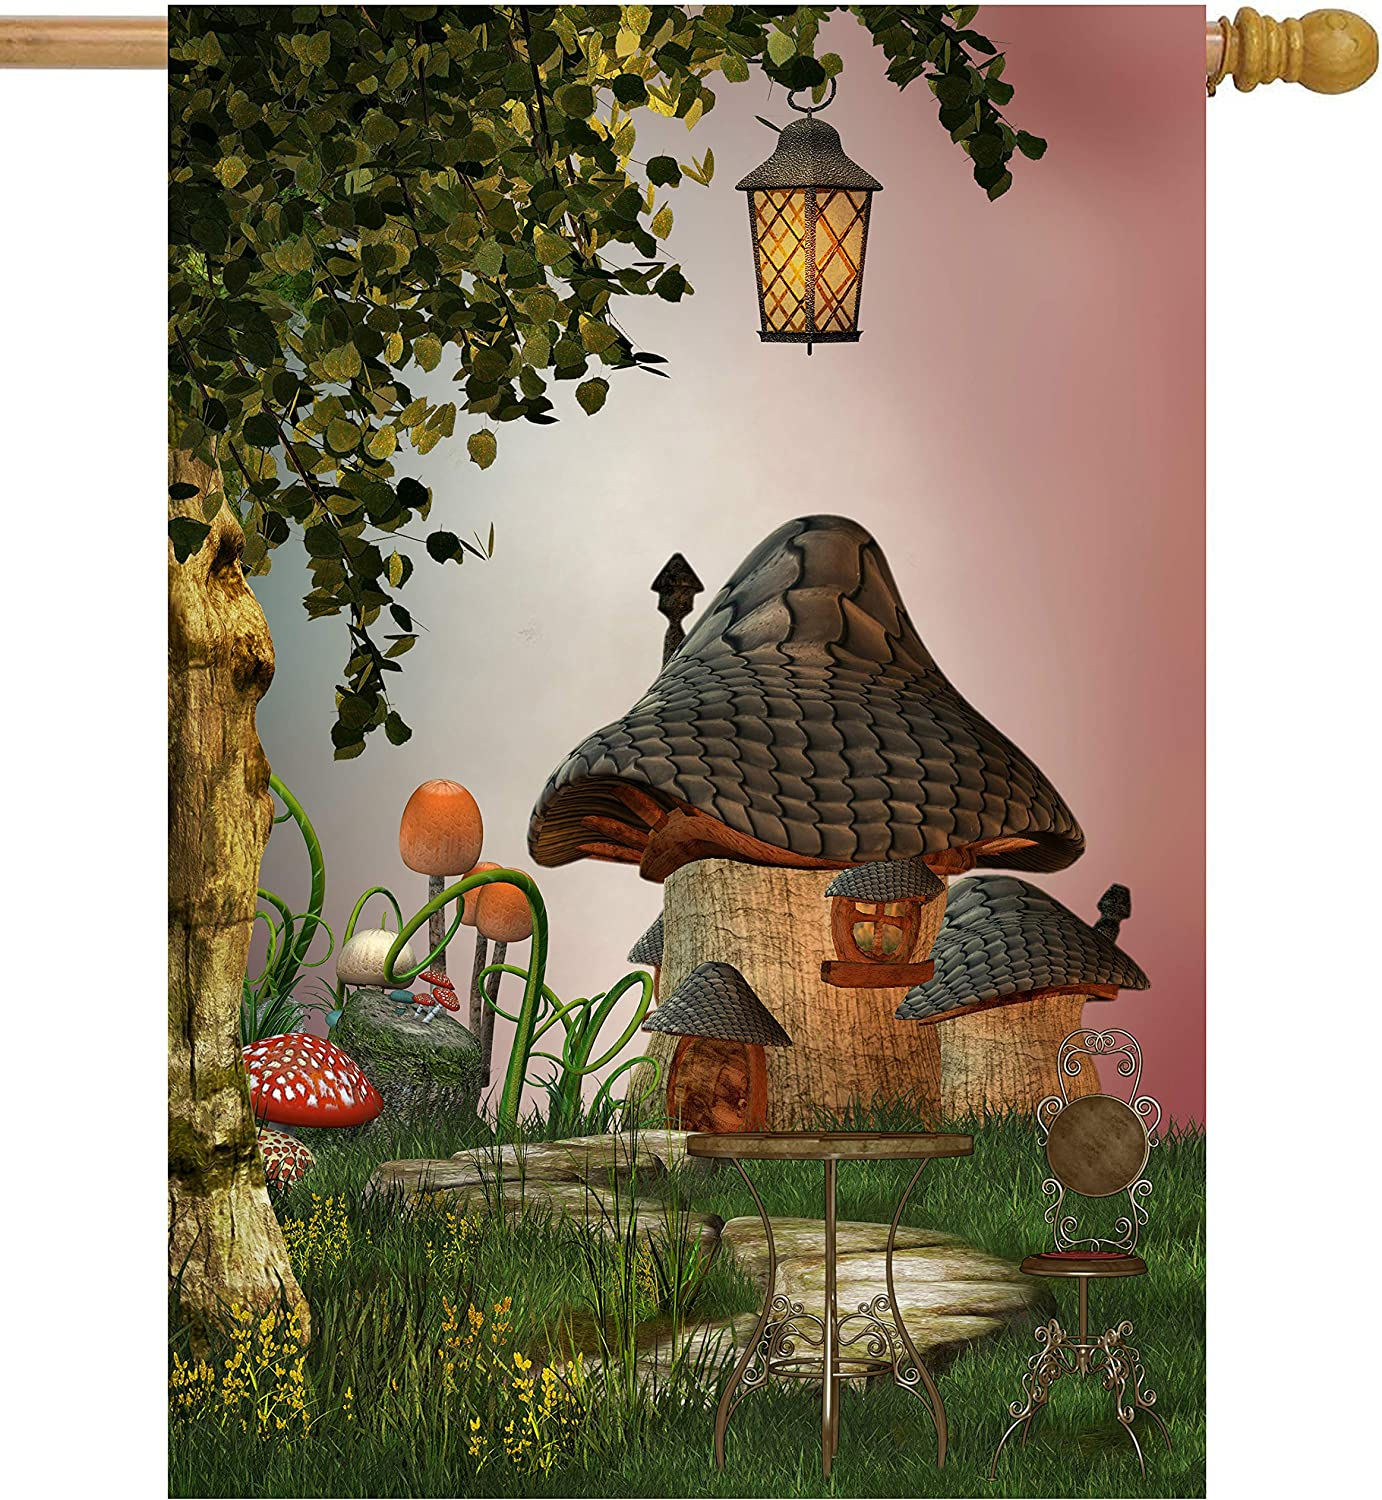 ShineSnow Fantastic Free shipping on posting reviews Fairy Tales Mushroom In a popularity Tree L Garden Landscape